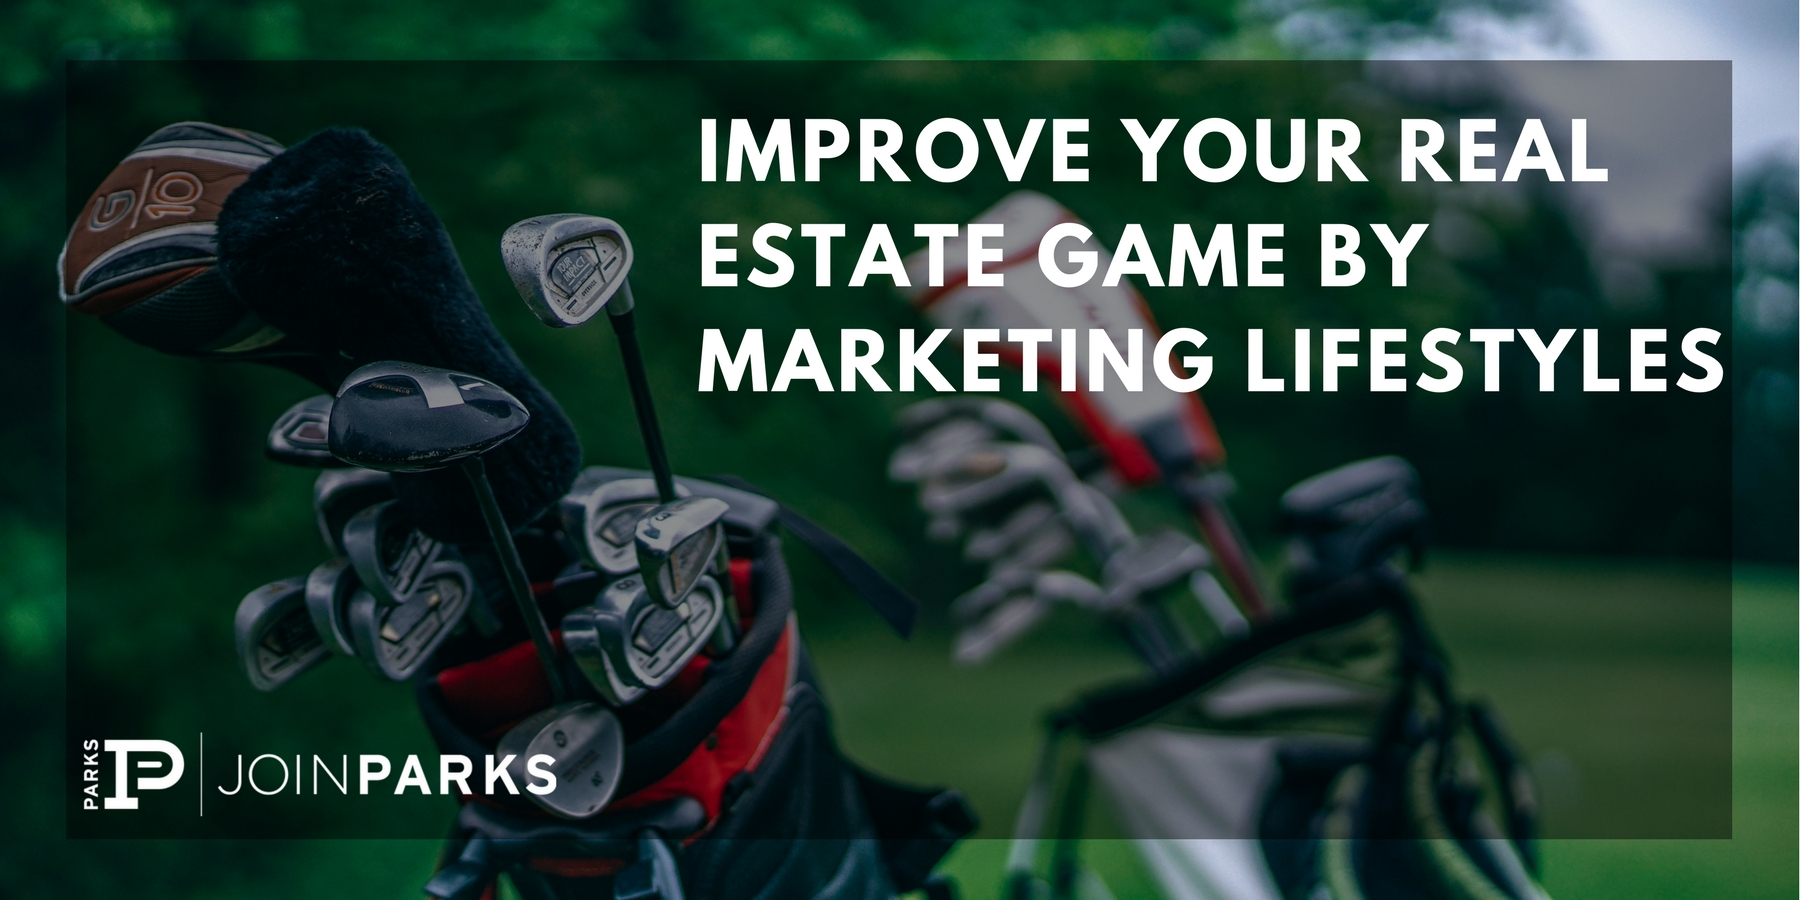 Improve Your Real Estate Game by Marketing Lifestyles.jpg